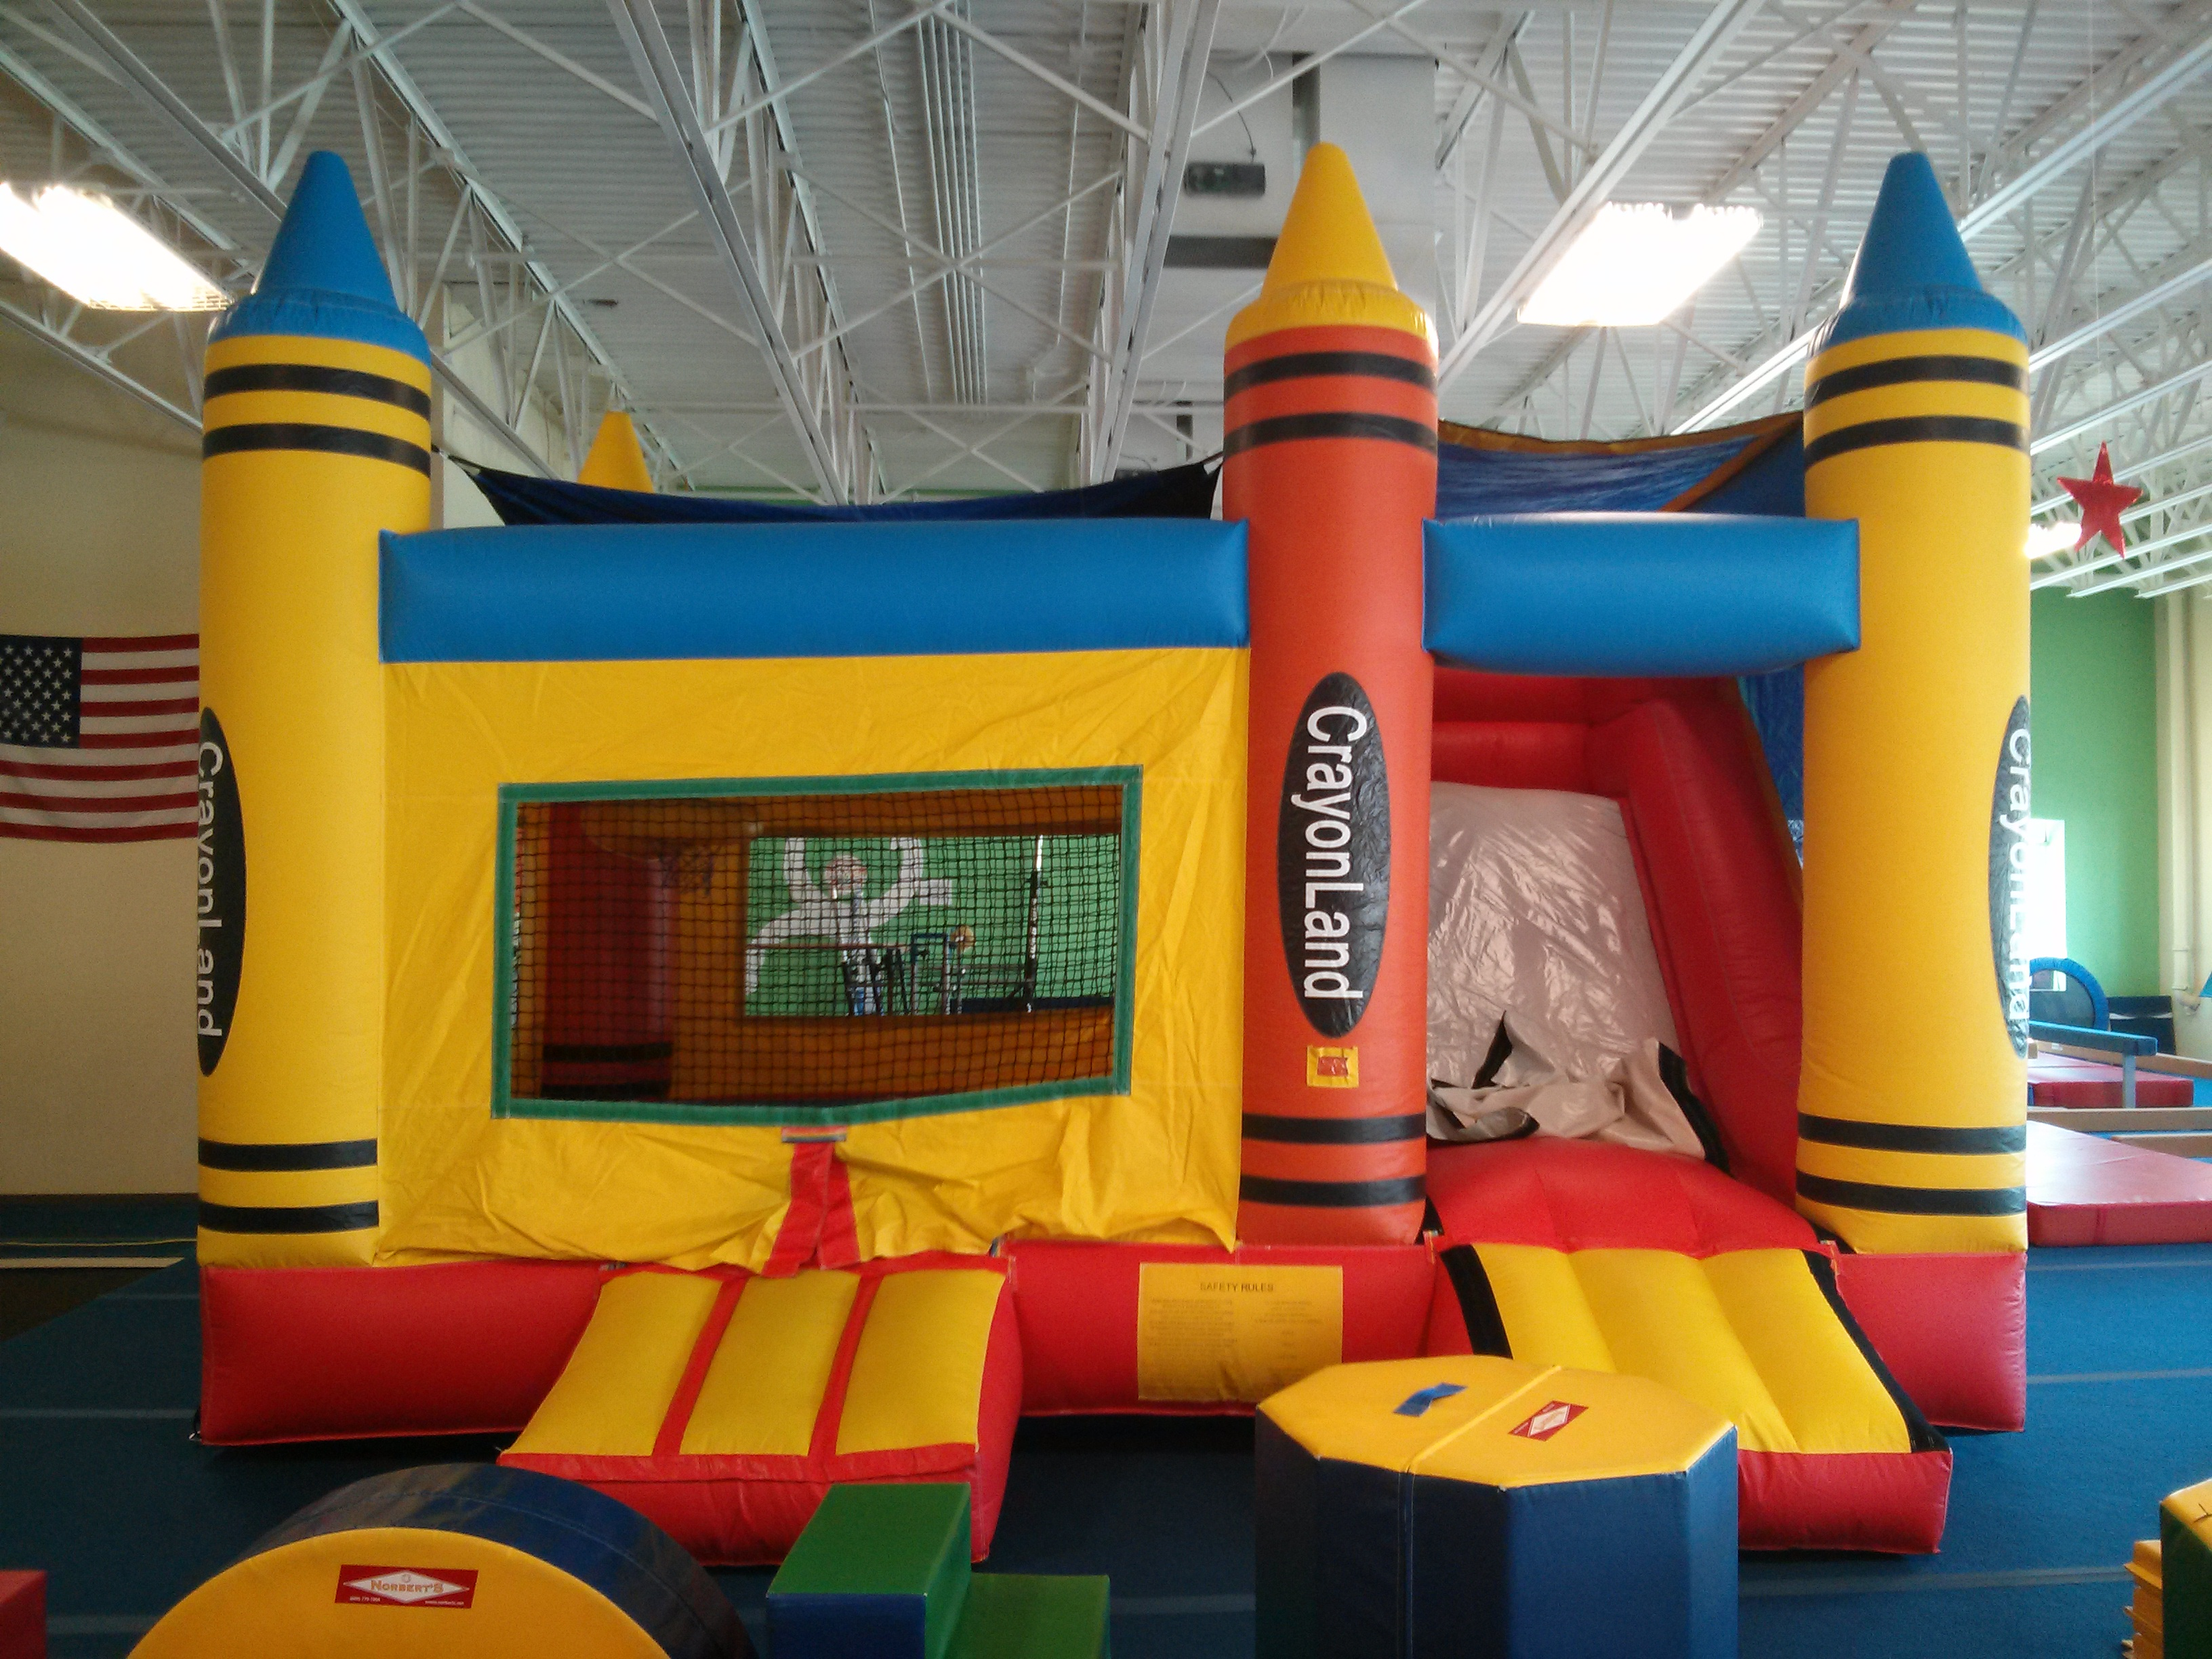 mn inflatable repairs maple grove mn 55369 yp com